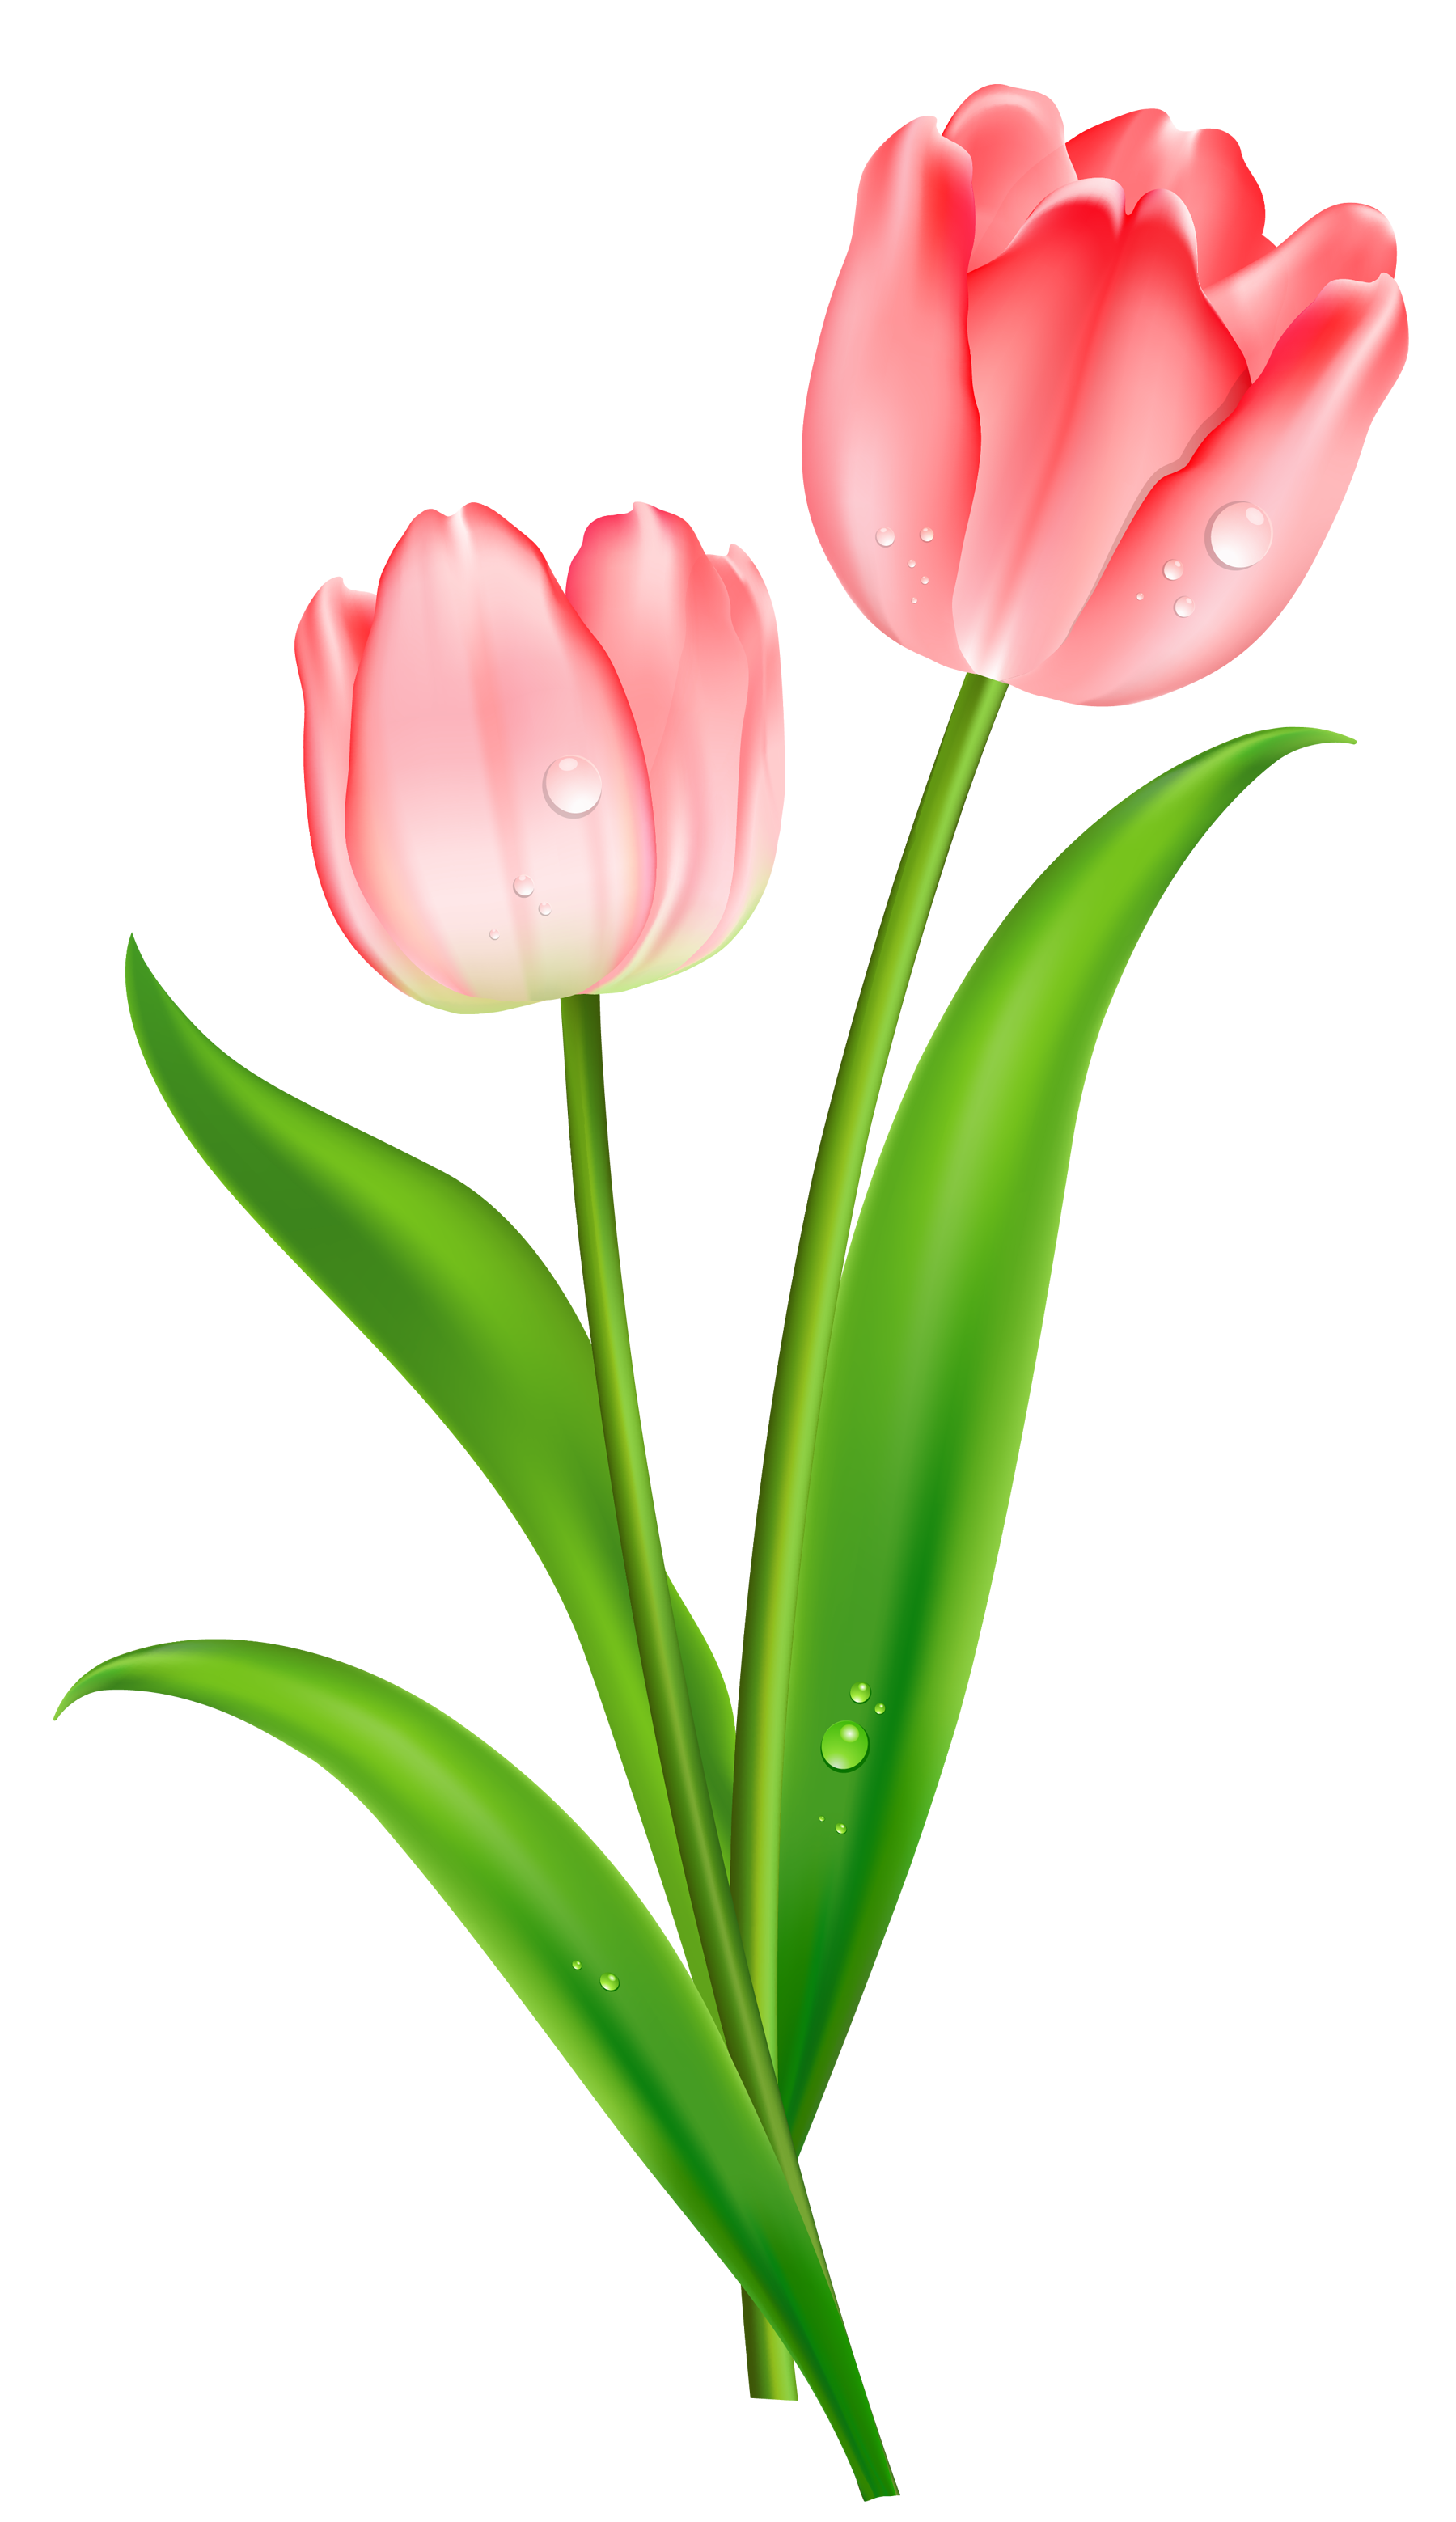 Tulips clipart pink tulips. Tulip png images free